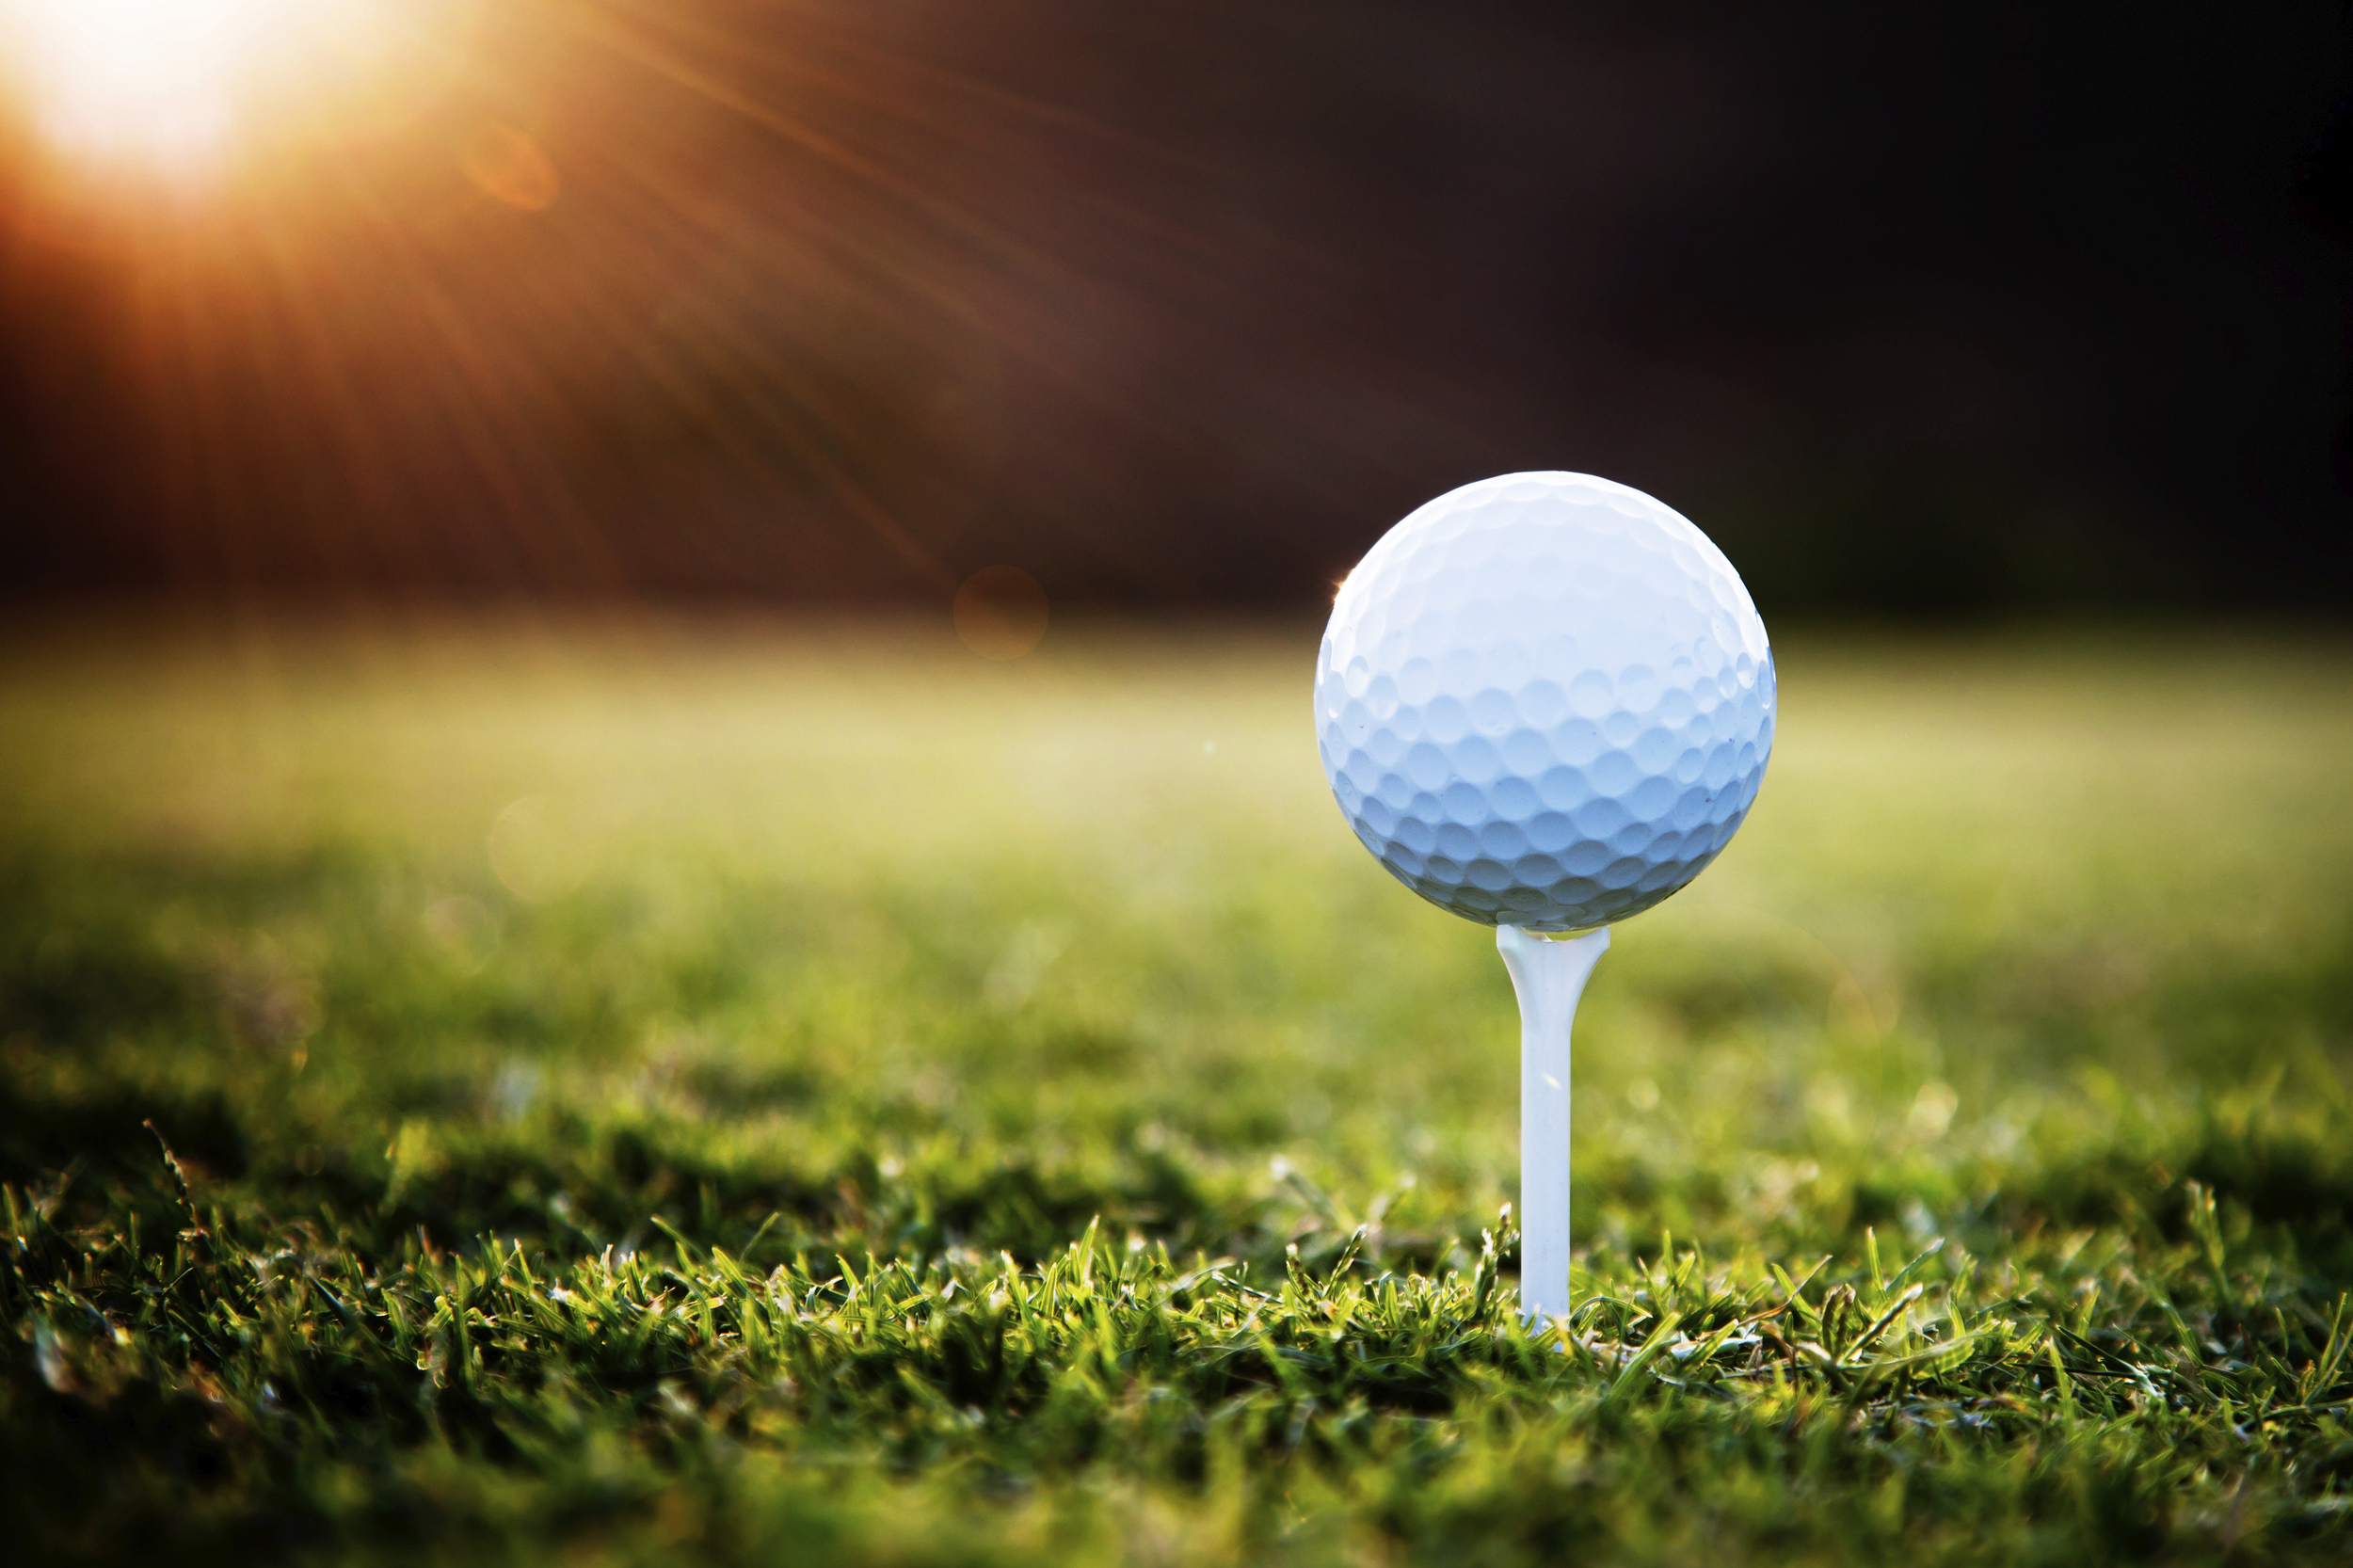 June 1, 2019 - 12th AnnualCPT Joe F. Lusk IIMemorial Foundation Golf Tournament